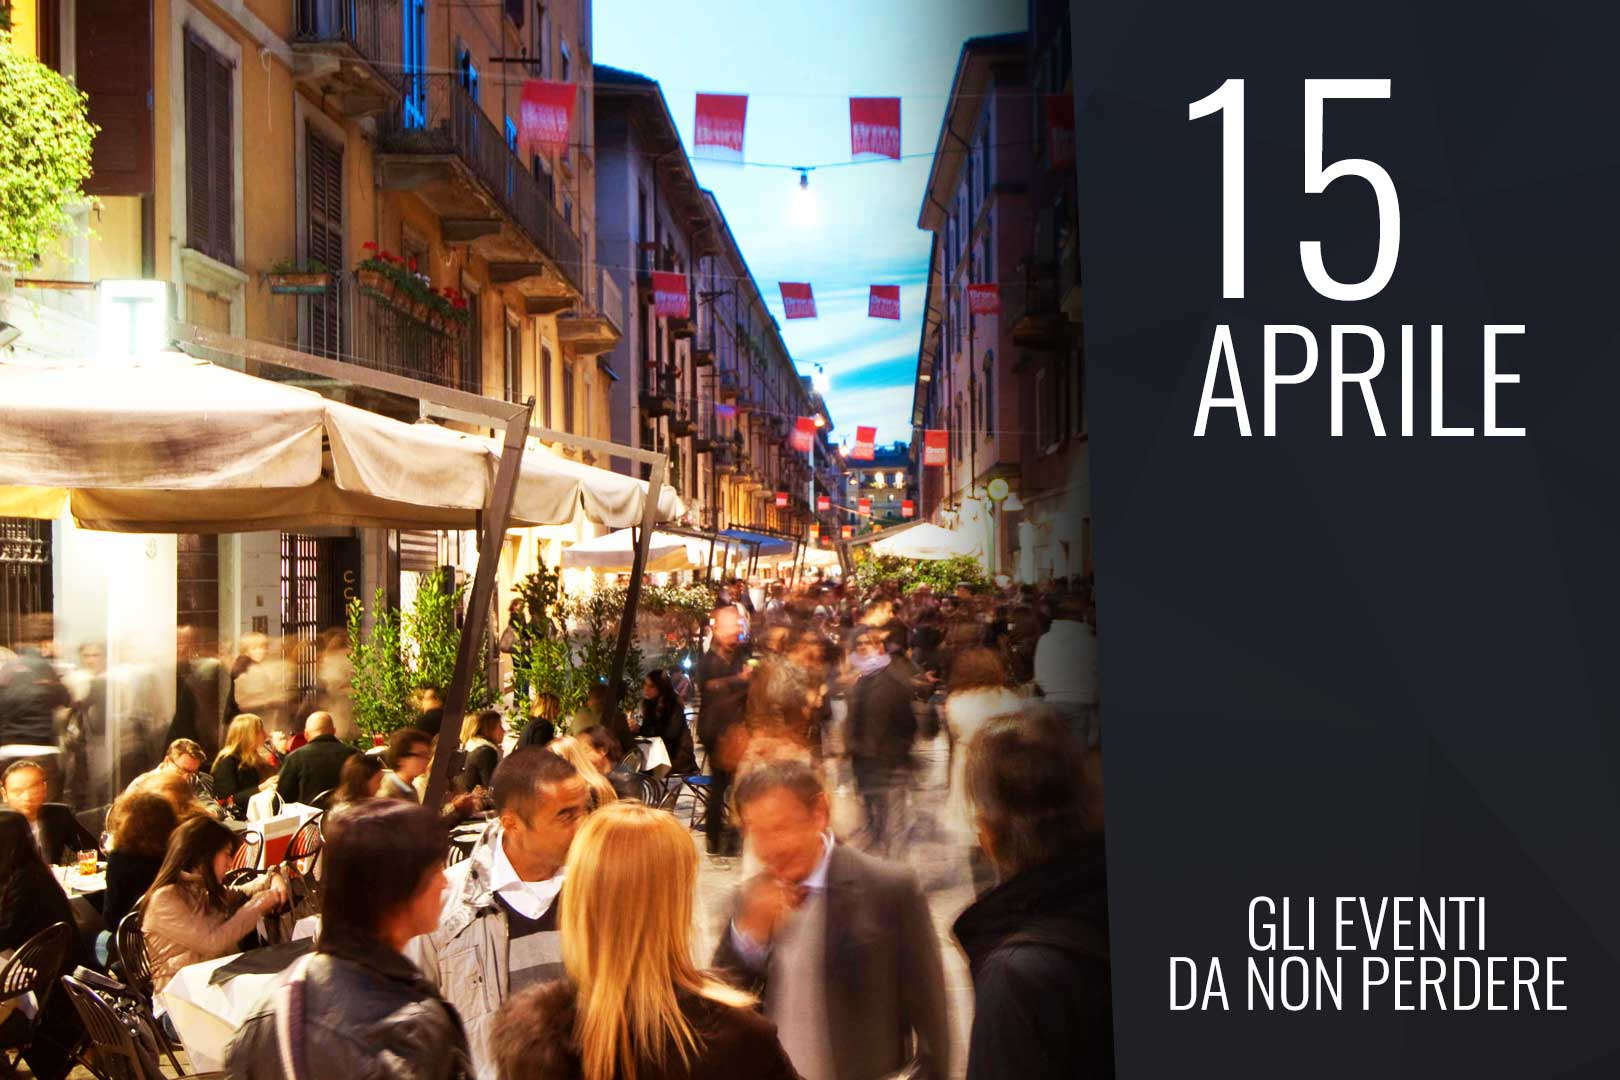 April, Saturday 16th: the events you cannot miss